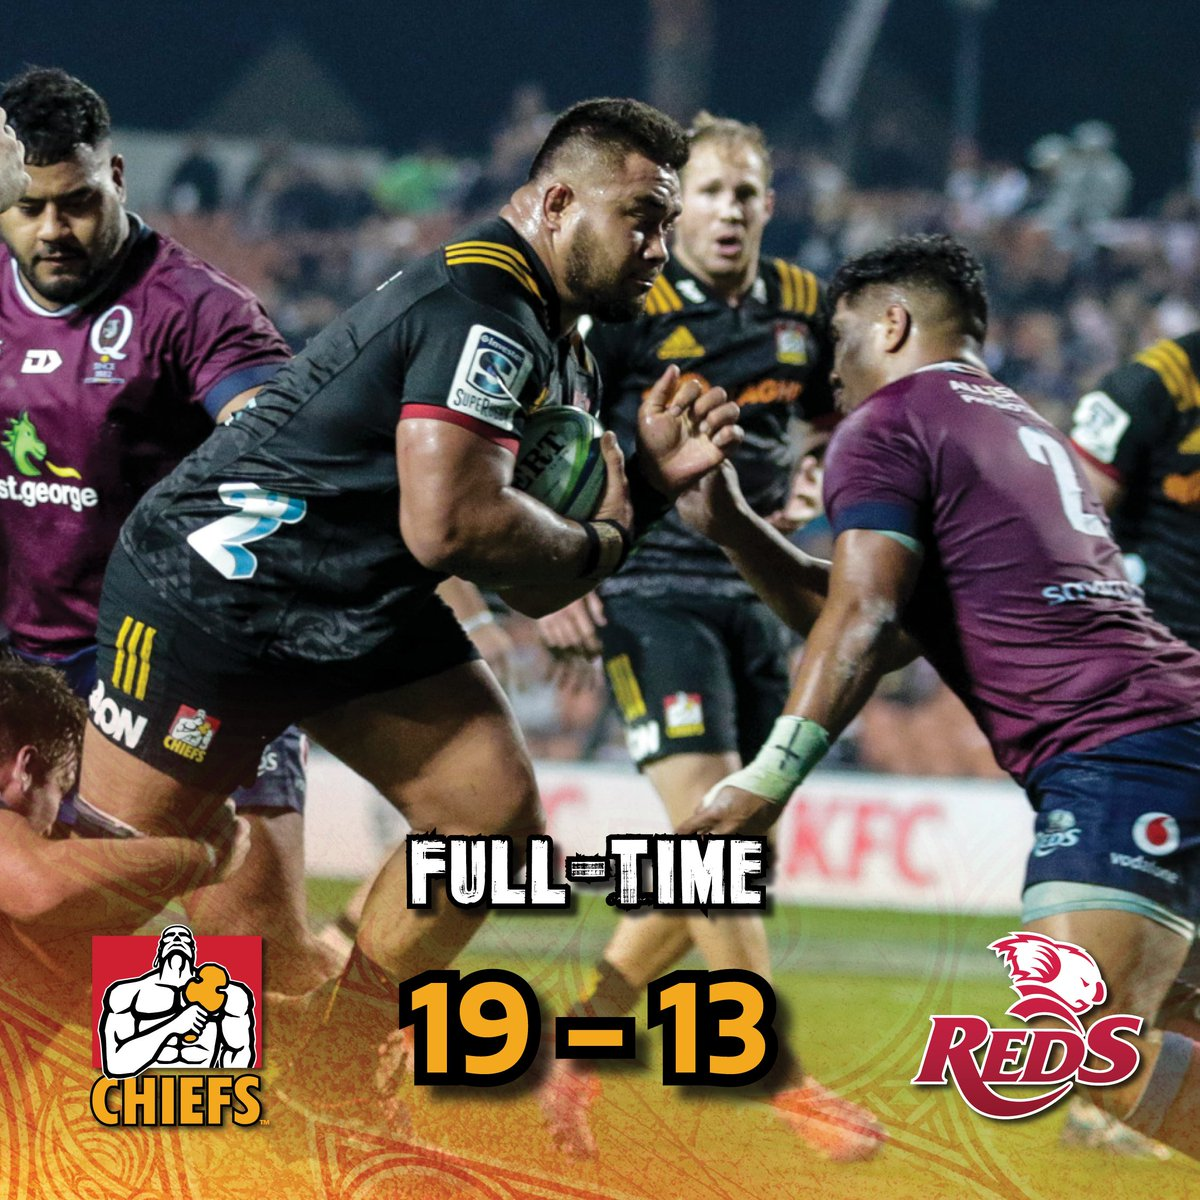 Gallagher Chiefs's photo on #chivred